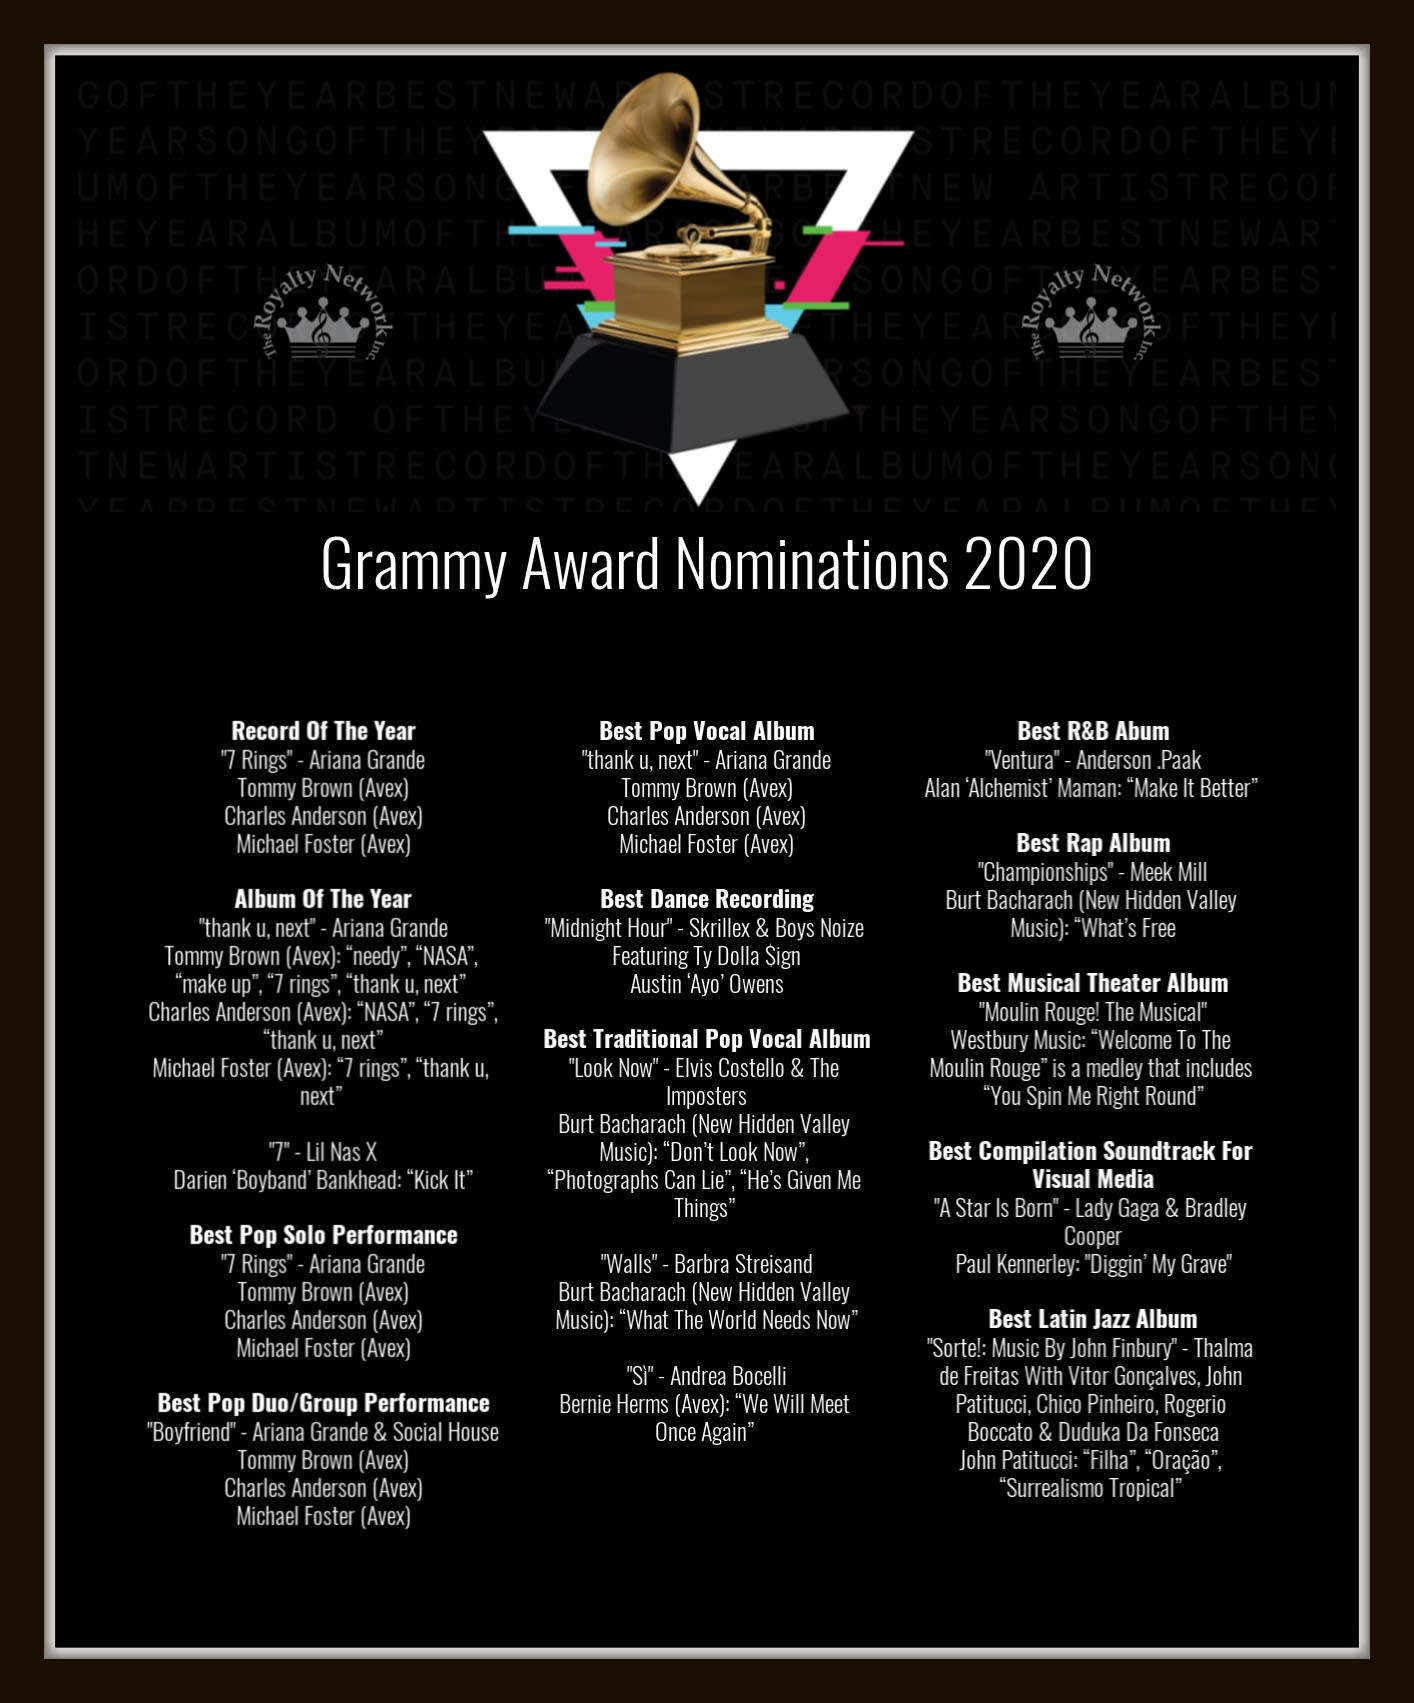 RoyNet Grammy Award Nominations 2020